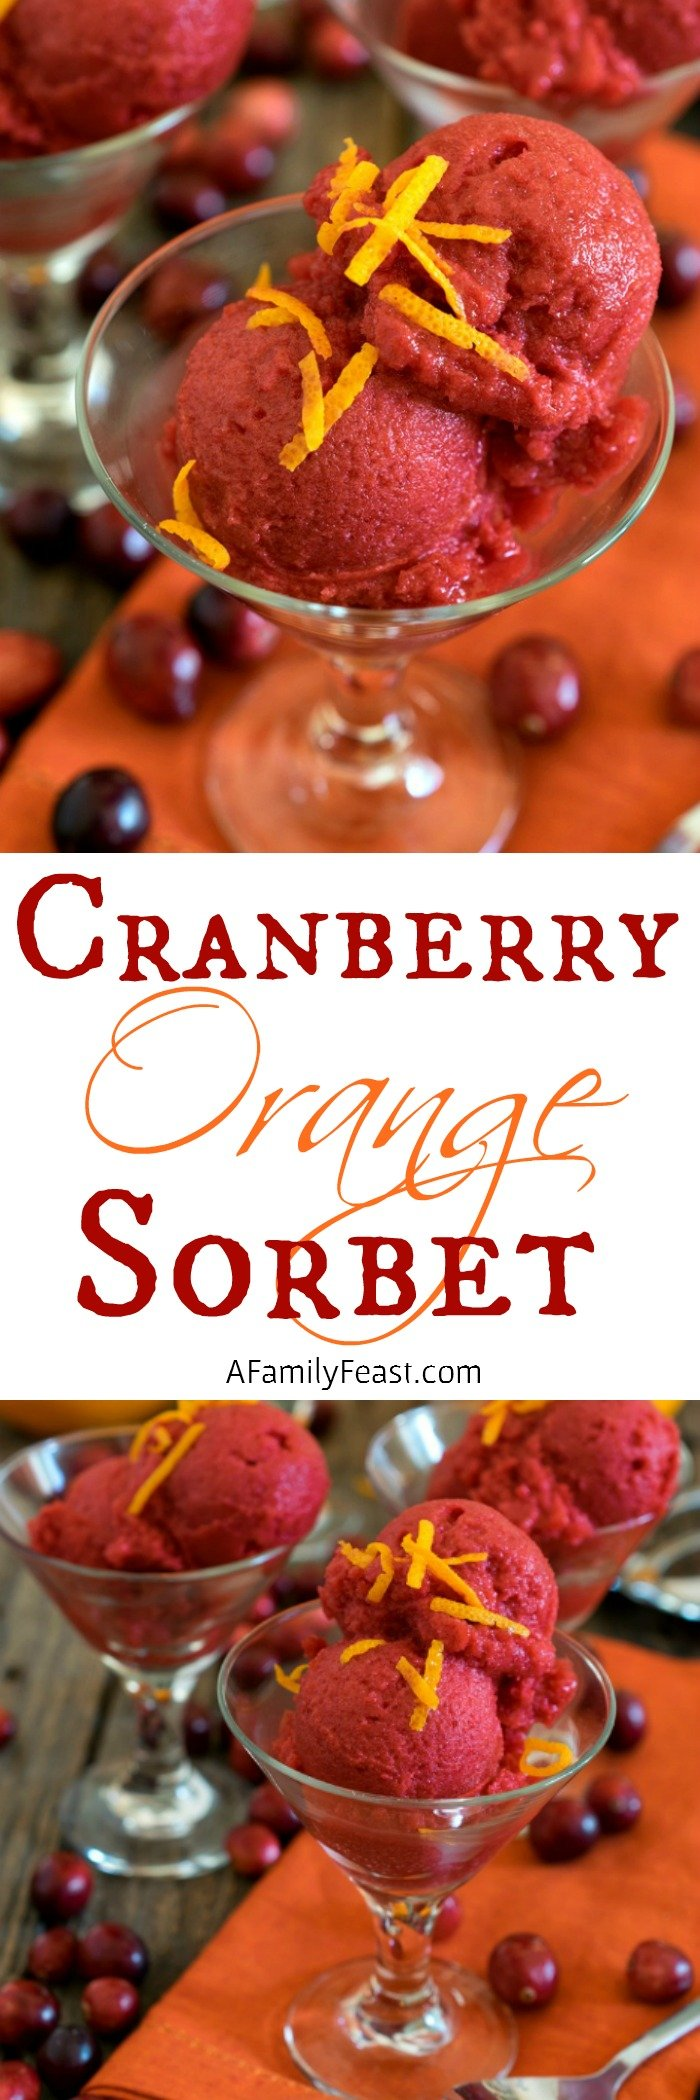 This sweet-tart Cranberry Orange Sorbet is a deliciously refreshing dessert!